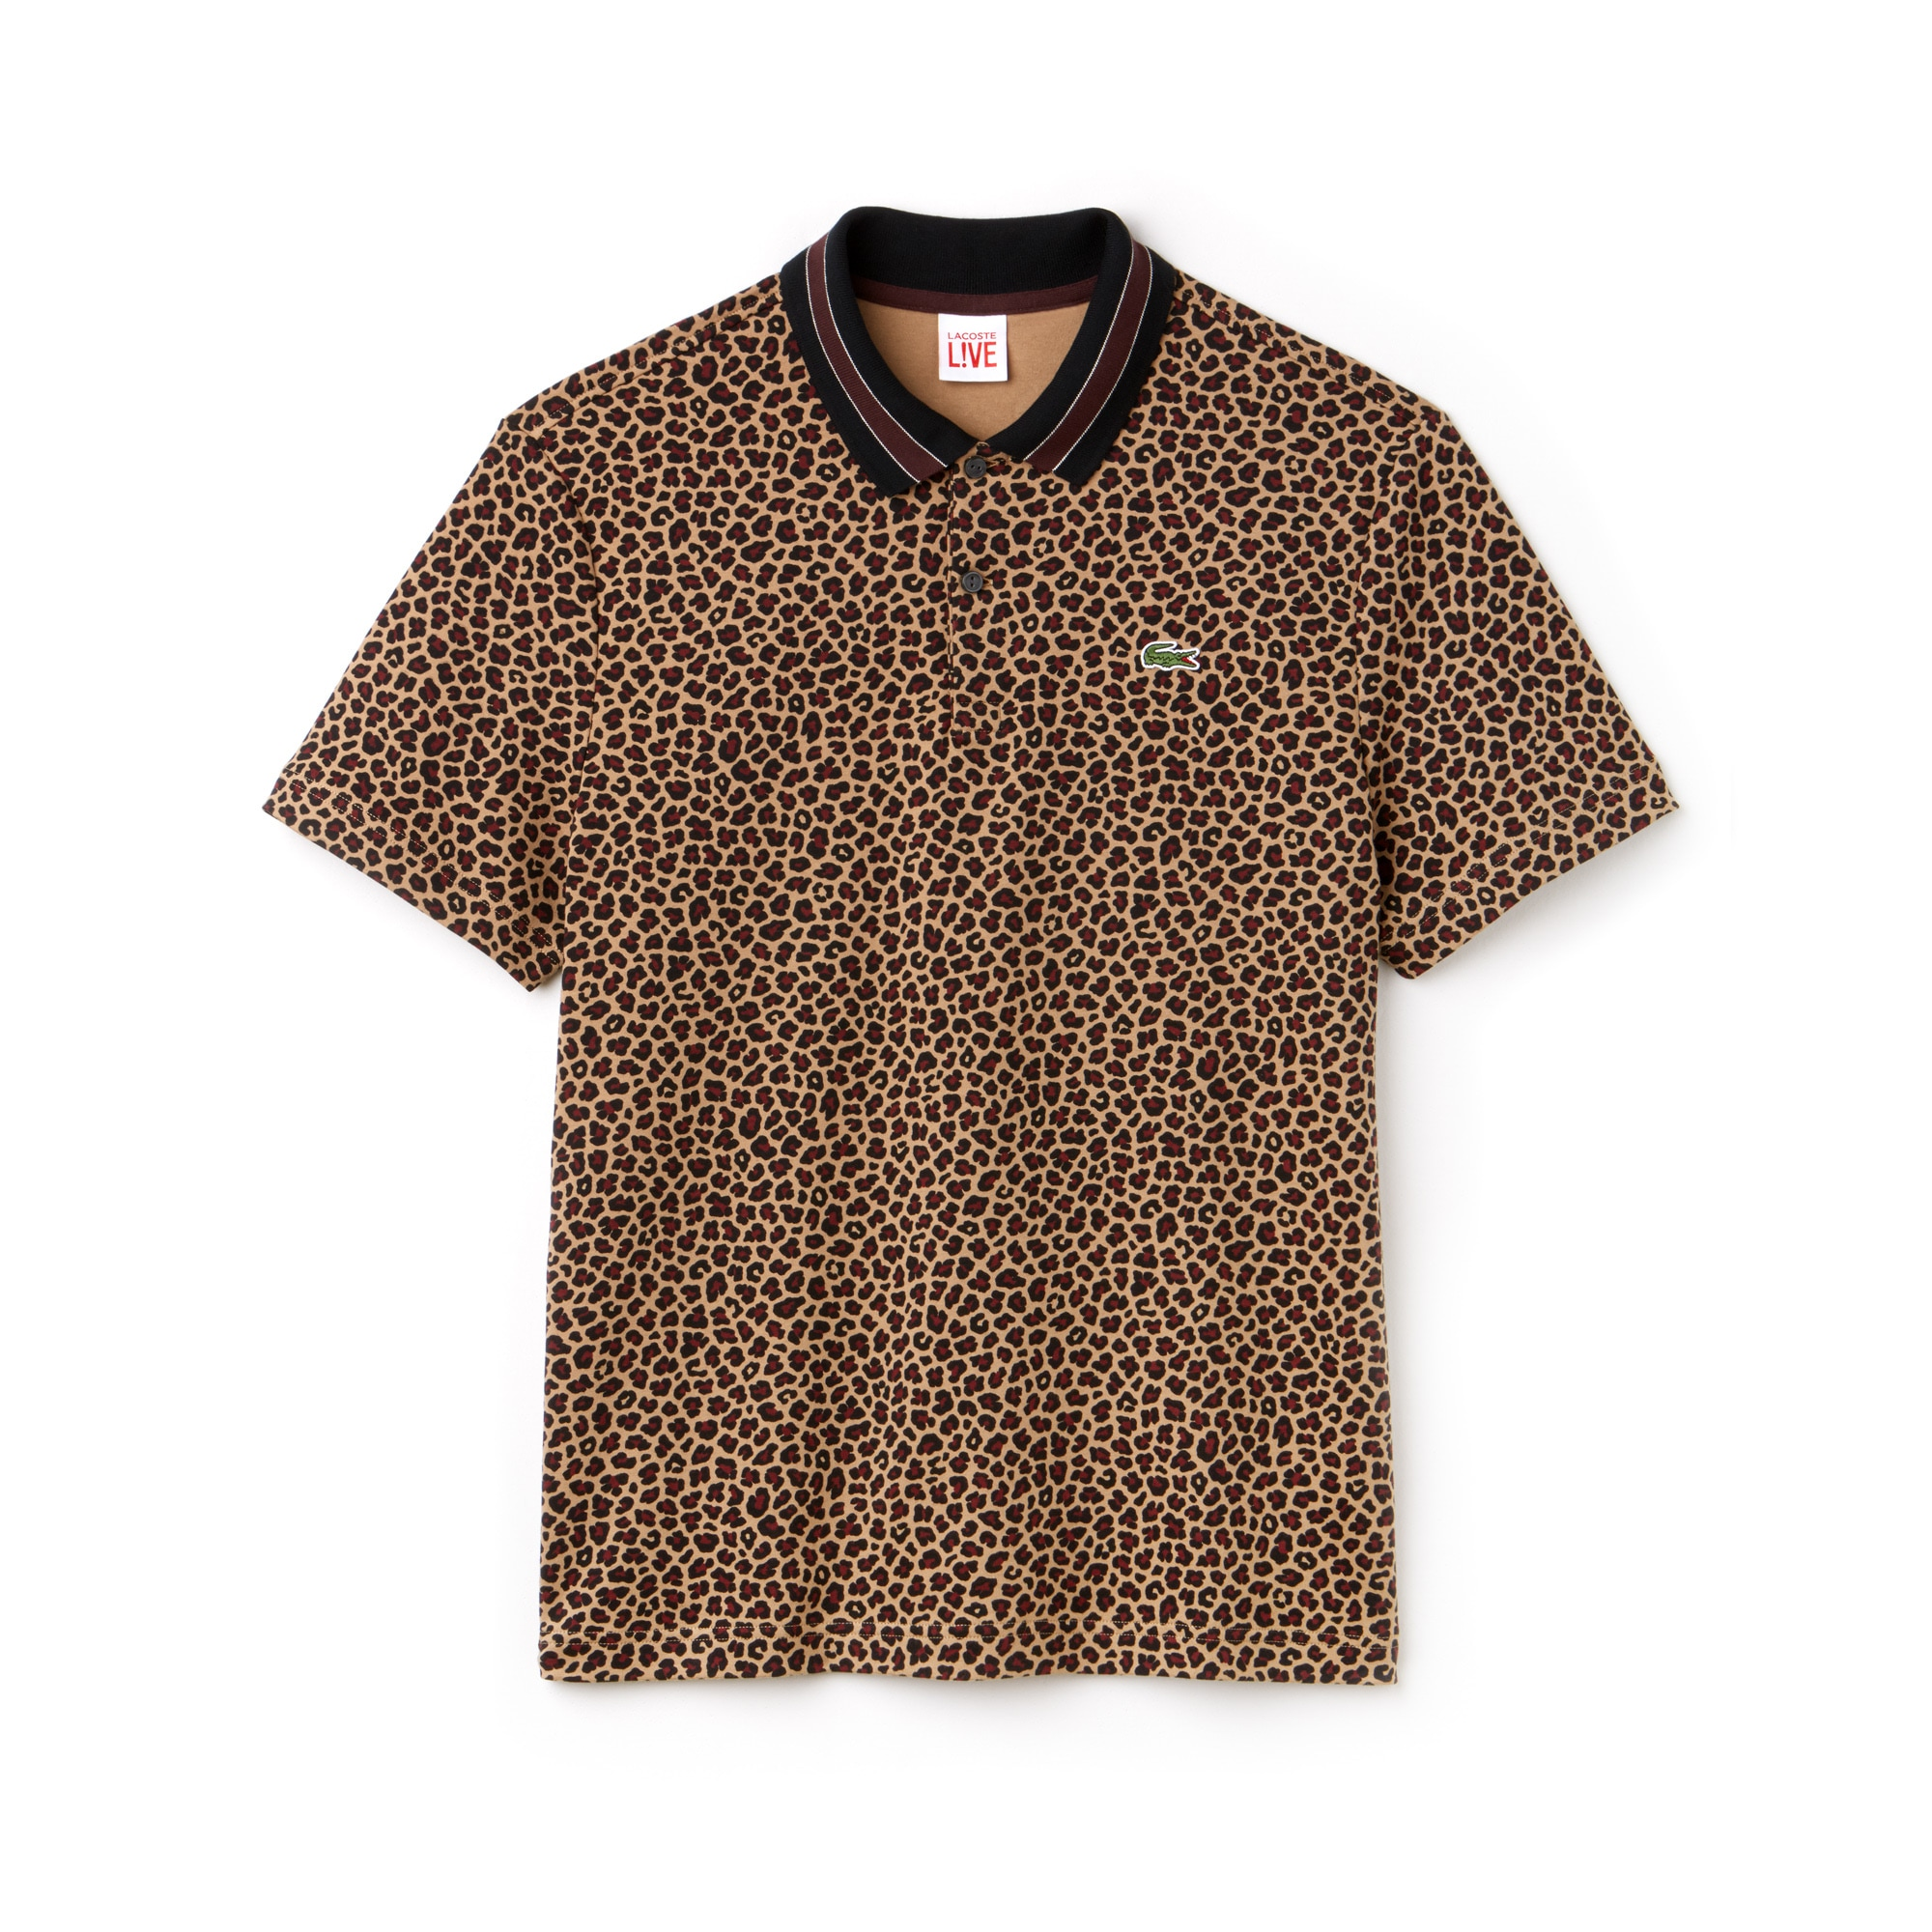 Polo De Hombre Lacoste LIVE Regular Fit En Interlock Con Estampado De Leopardo